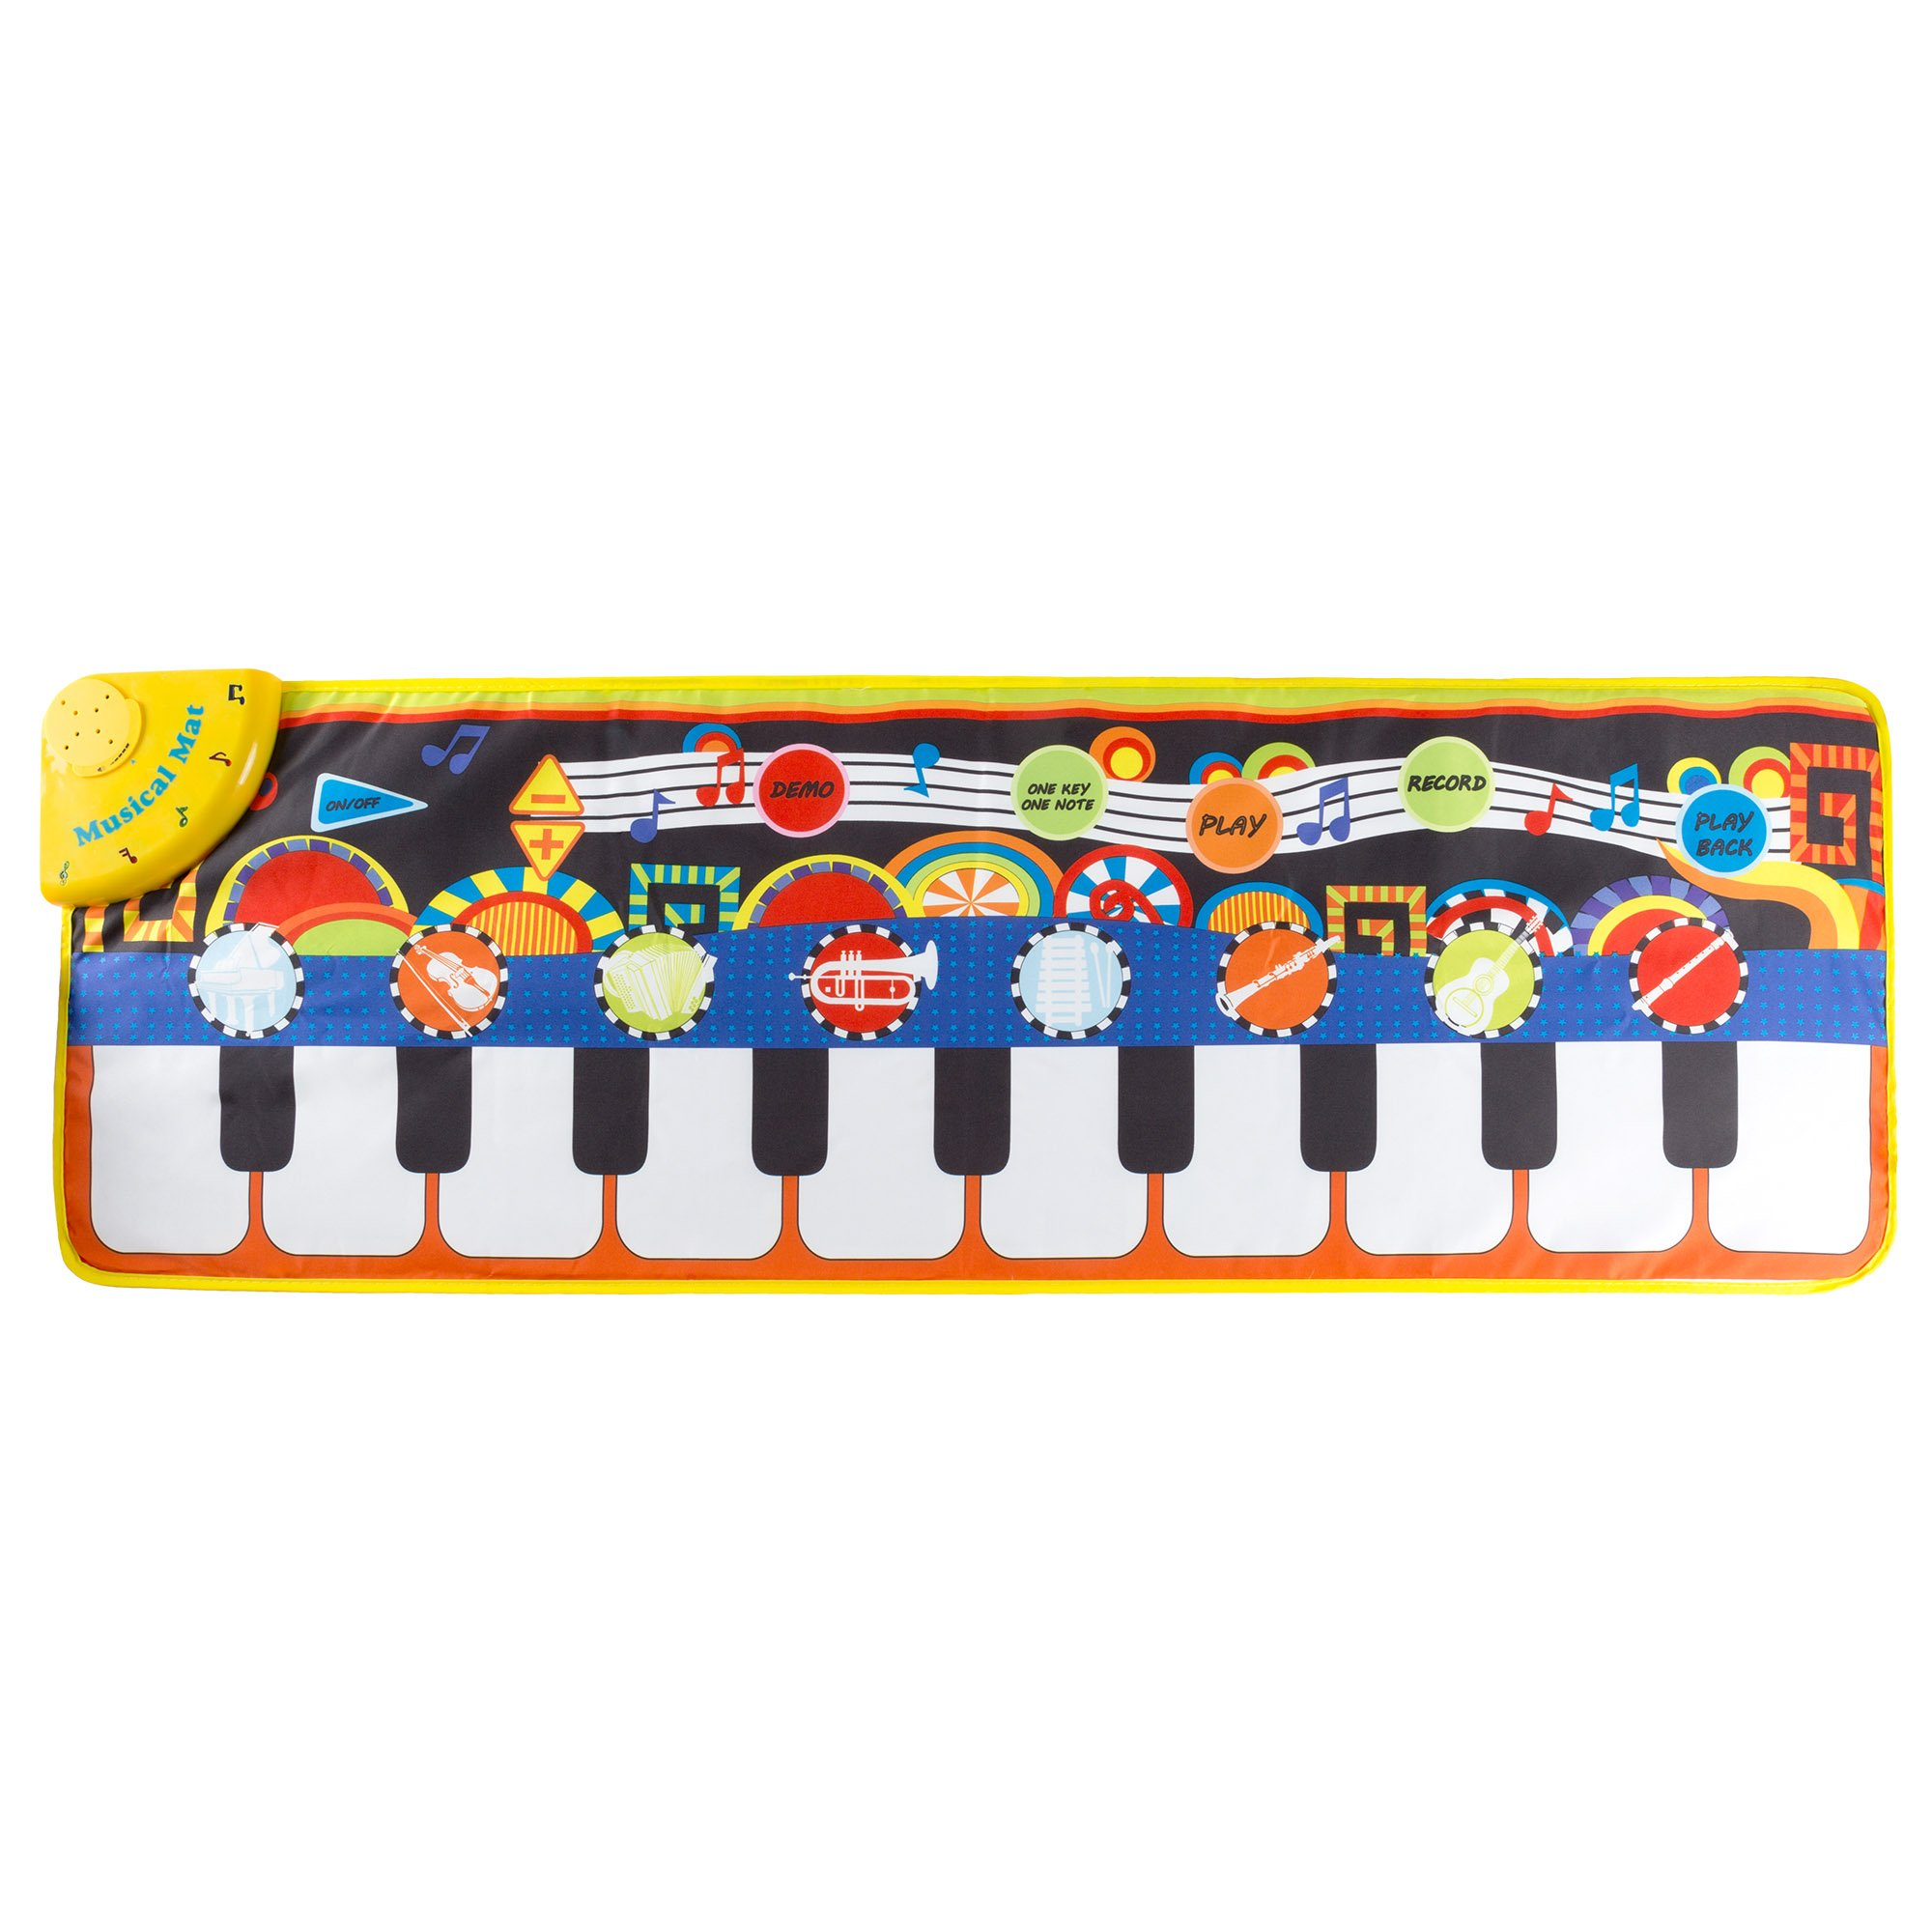 Step Piano Mat for Kids, Keyboard Mat with Musical Keys, Instrument Sounds, Record, Playback, Demo Modes for Toddlers, Boys and Girls by Hey! Play! by Hey! Play!